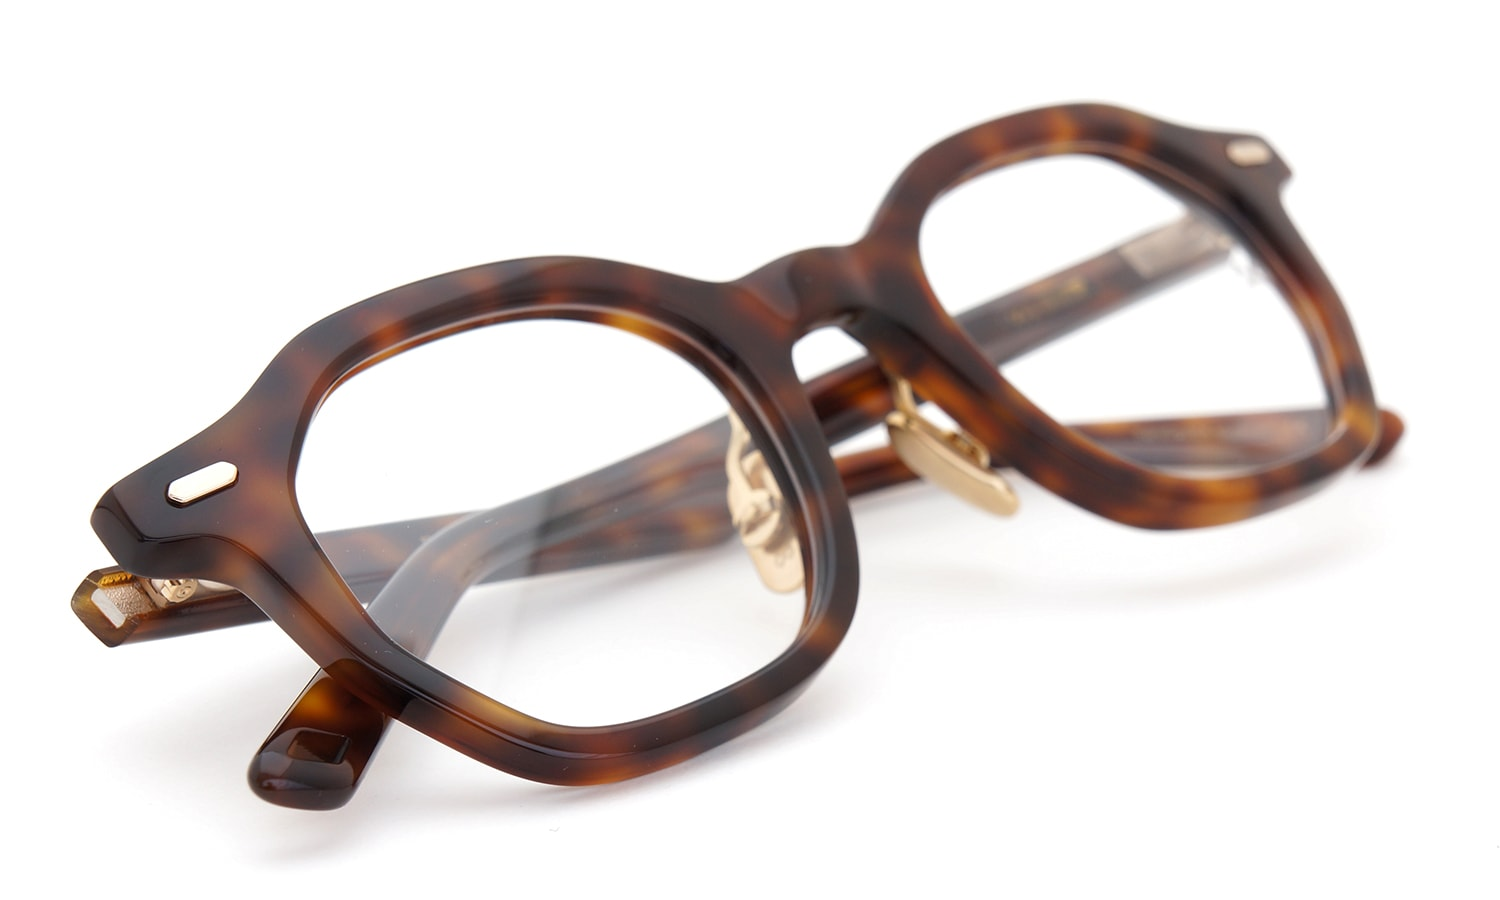 OG × OLIVER GOLDSMITH Re:BETSY 45 リ:ベッツィ 12